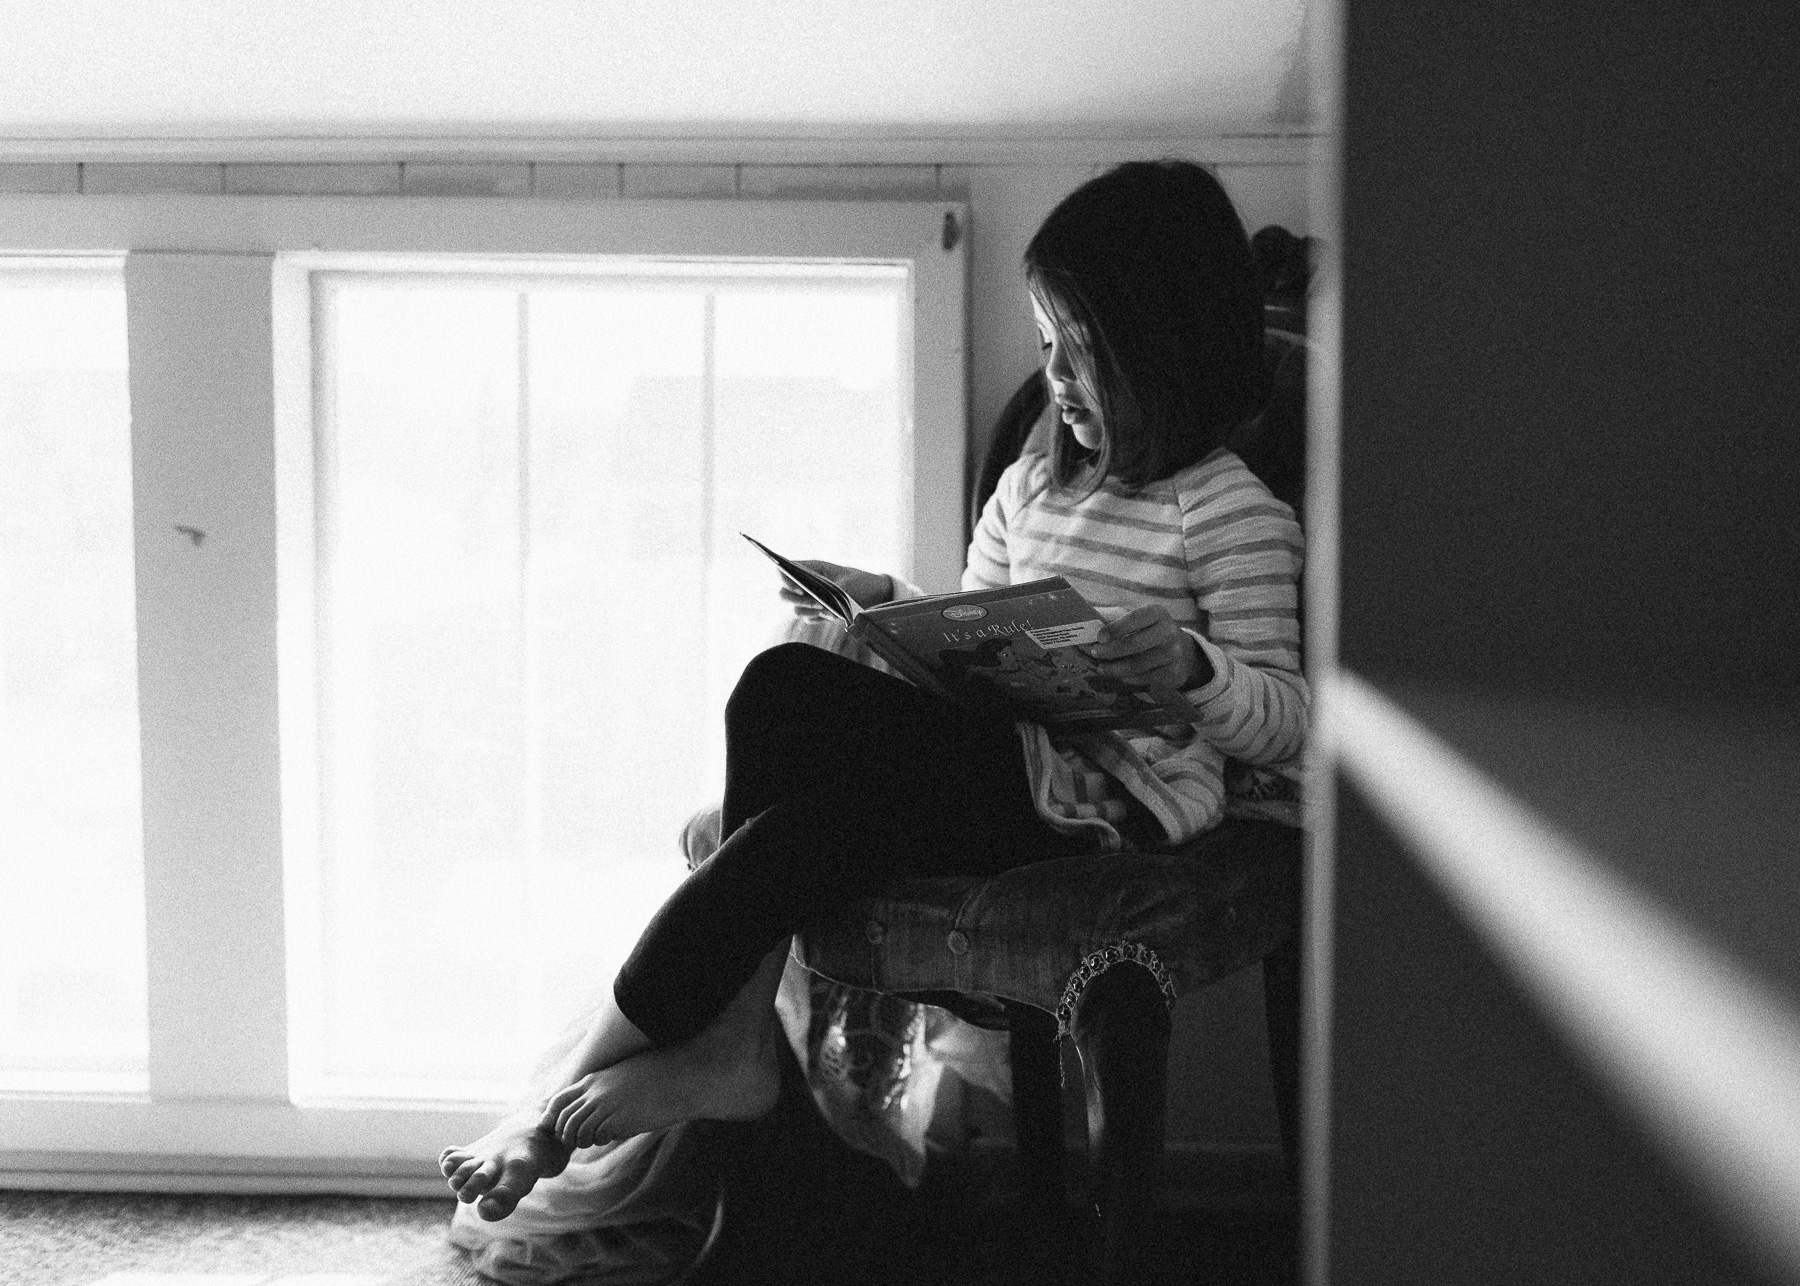 girl reading on chair